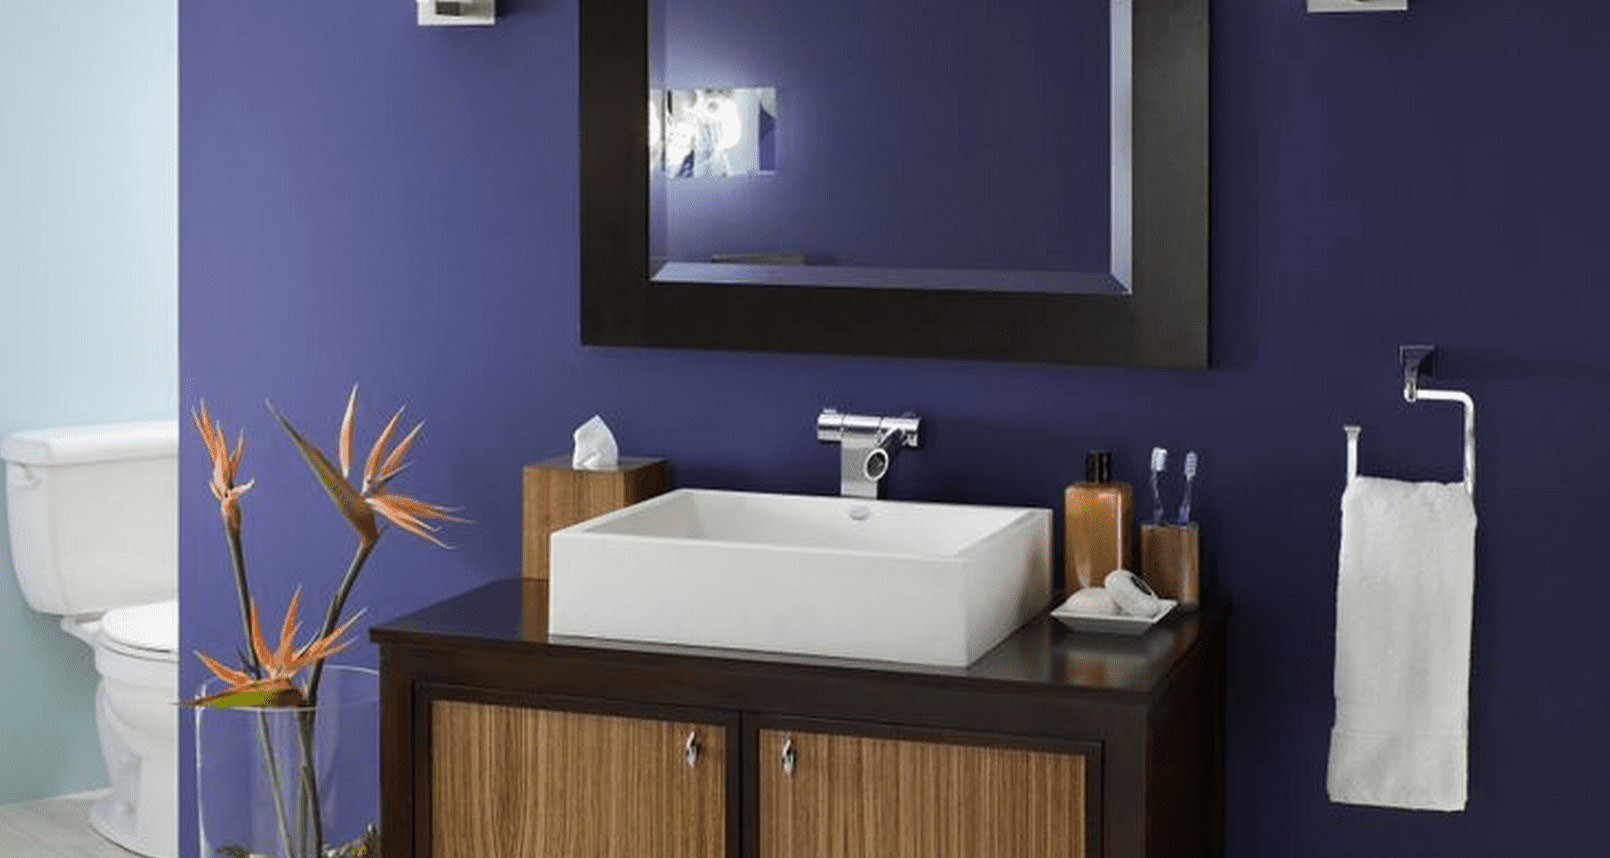 Best ideas about Bathroom Paint Color Ideas . Save or Pin The Best Paint Colors for a Small Bathroom Now.